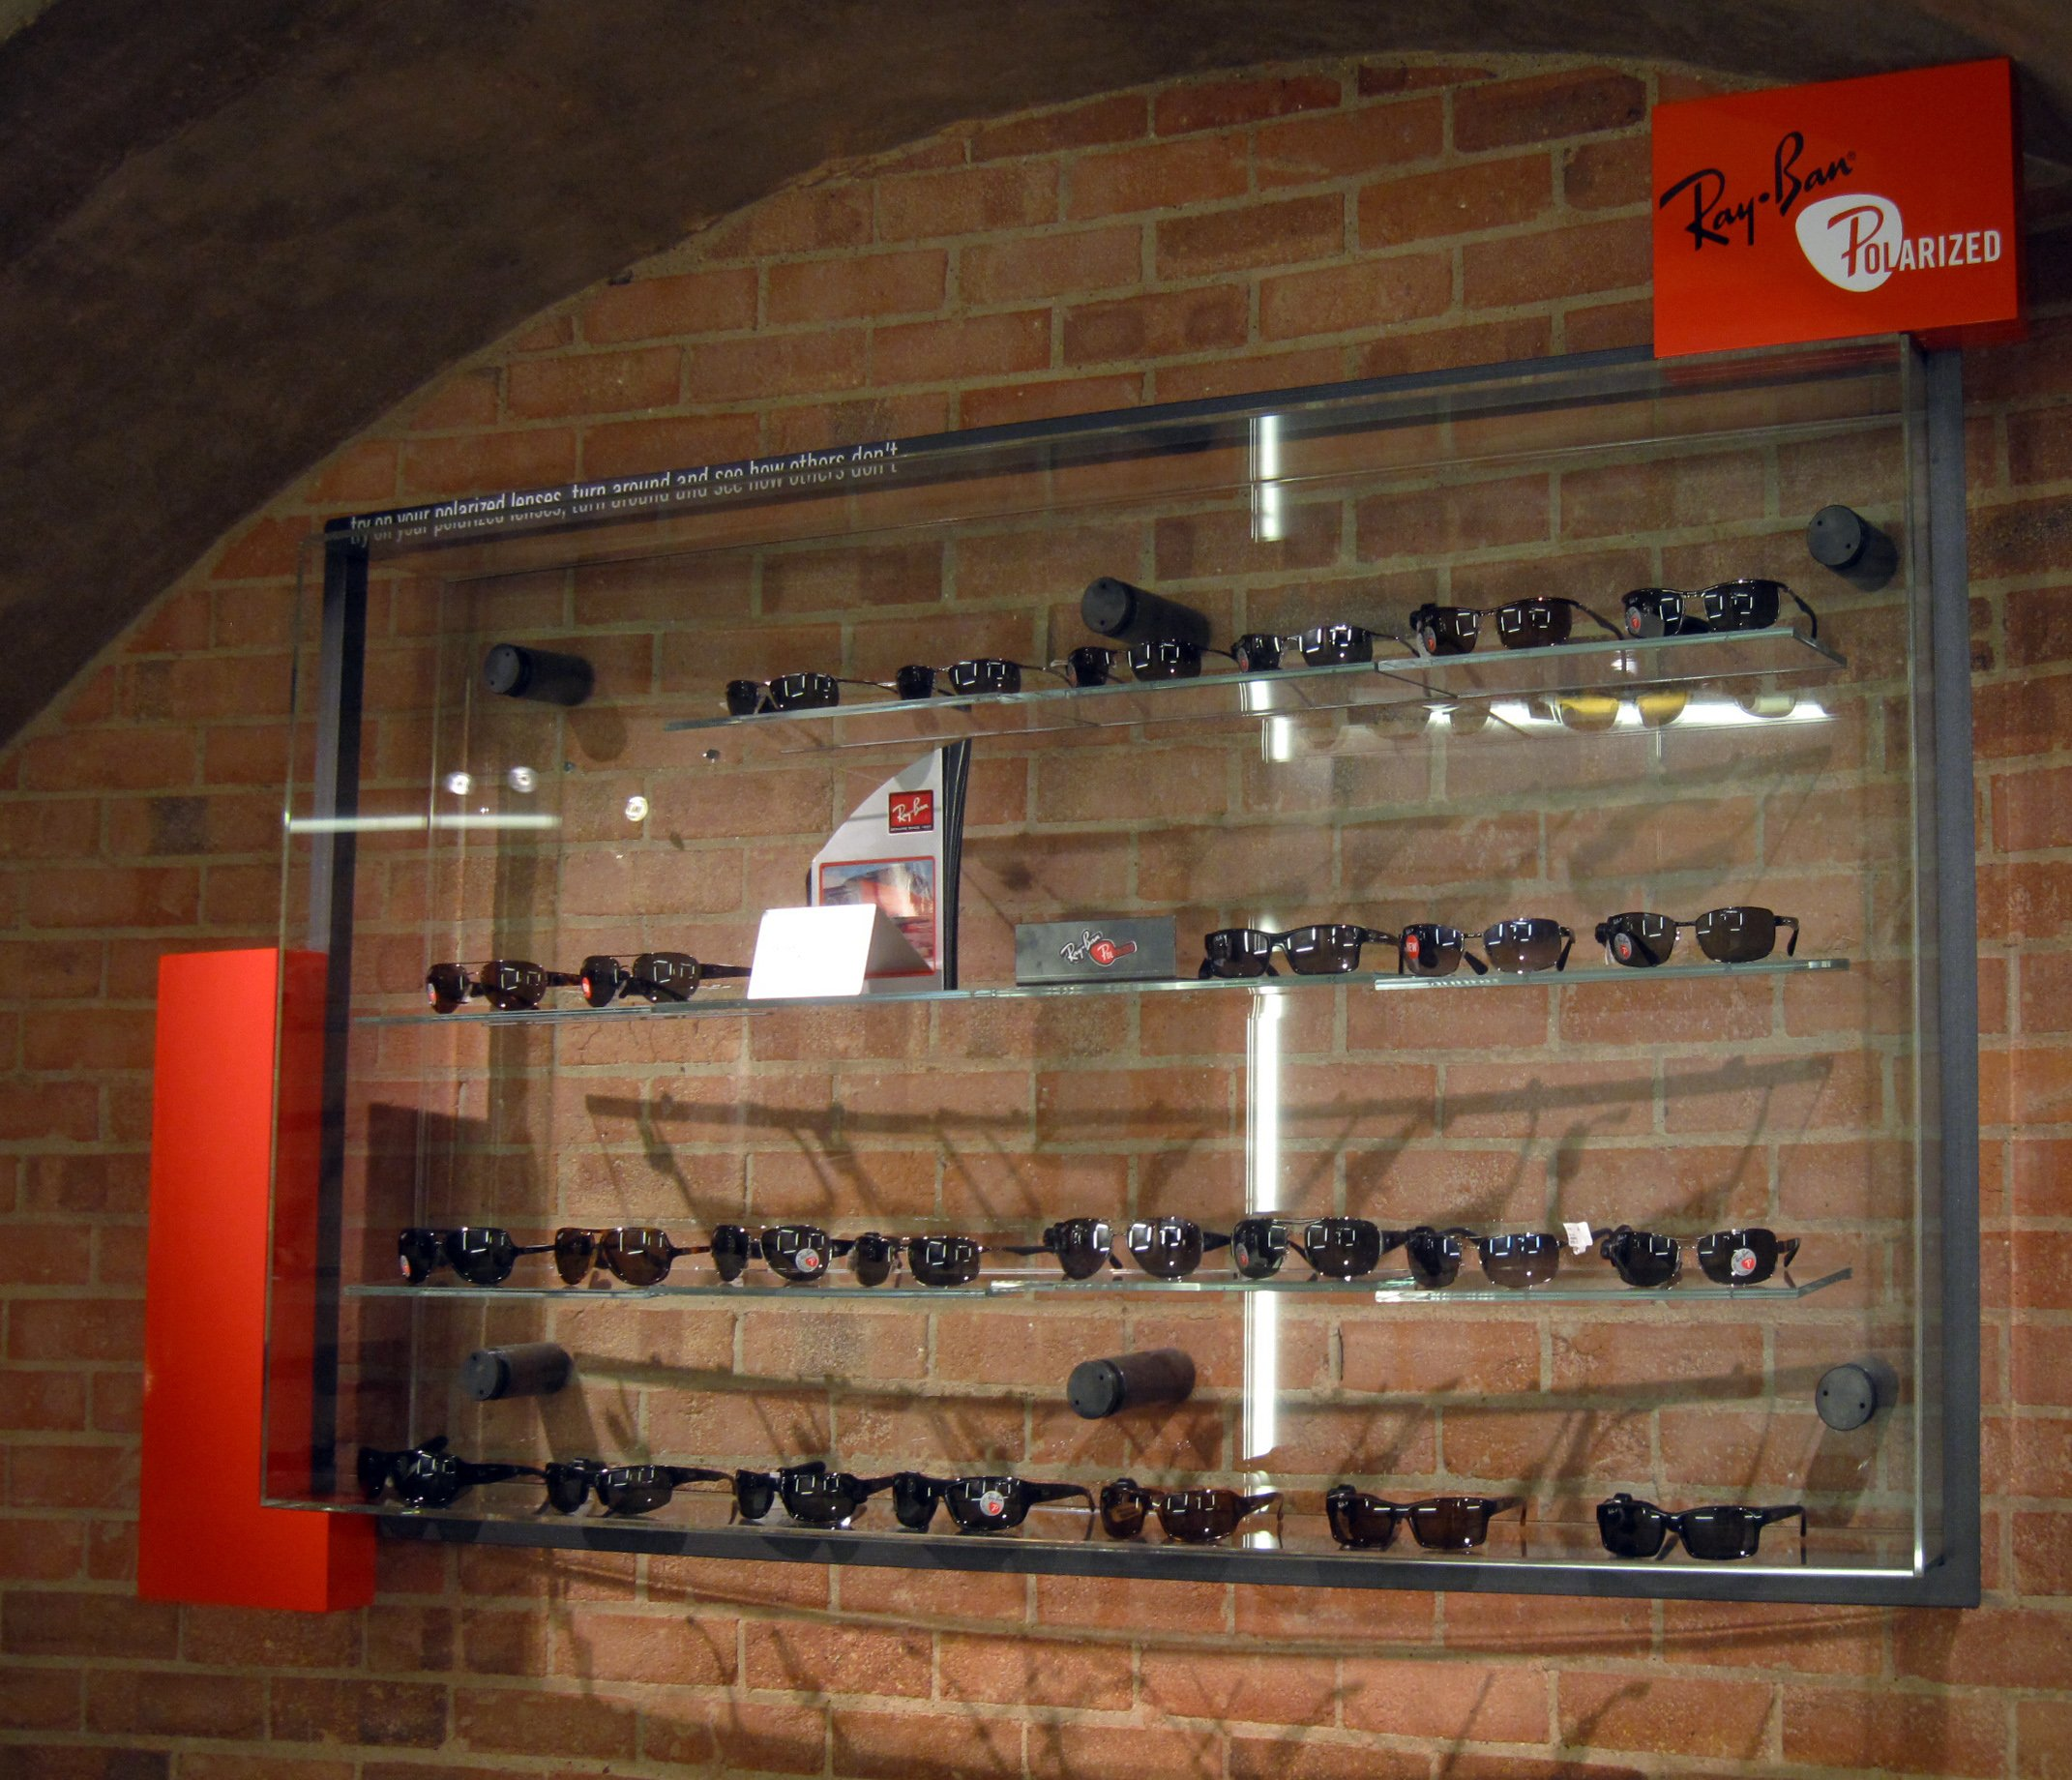 ray ban shops stores  description: ray ban polarized range in london store. size: 1614.5kb 2142x1840 pixel. uploaded on: 16/01/2012. last edit: 16/01/2012. viewed : 1449 times